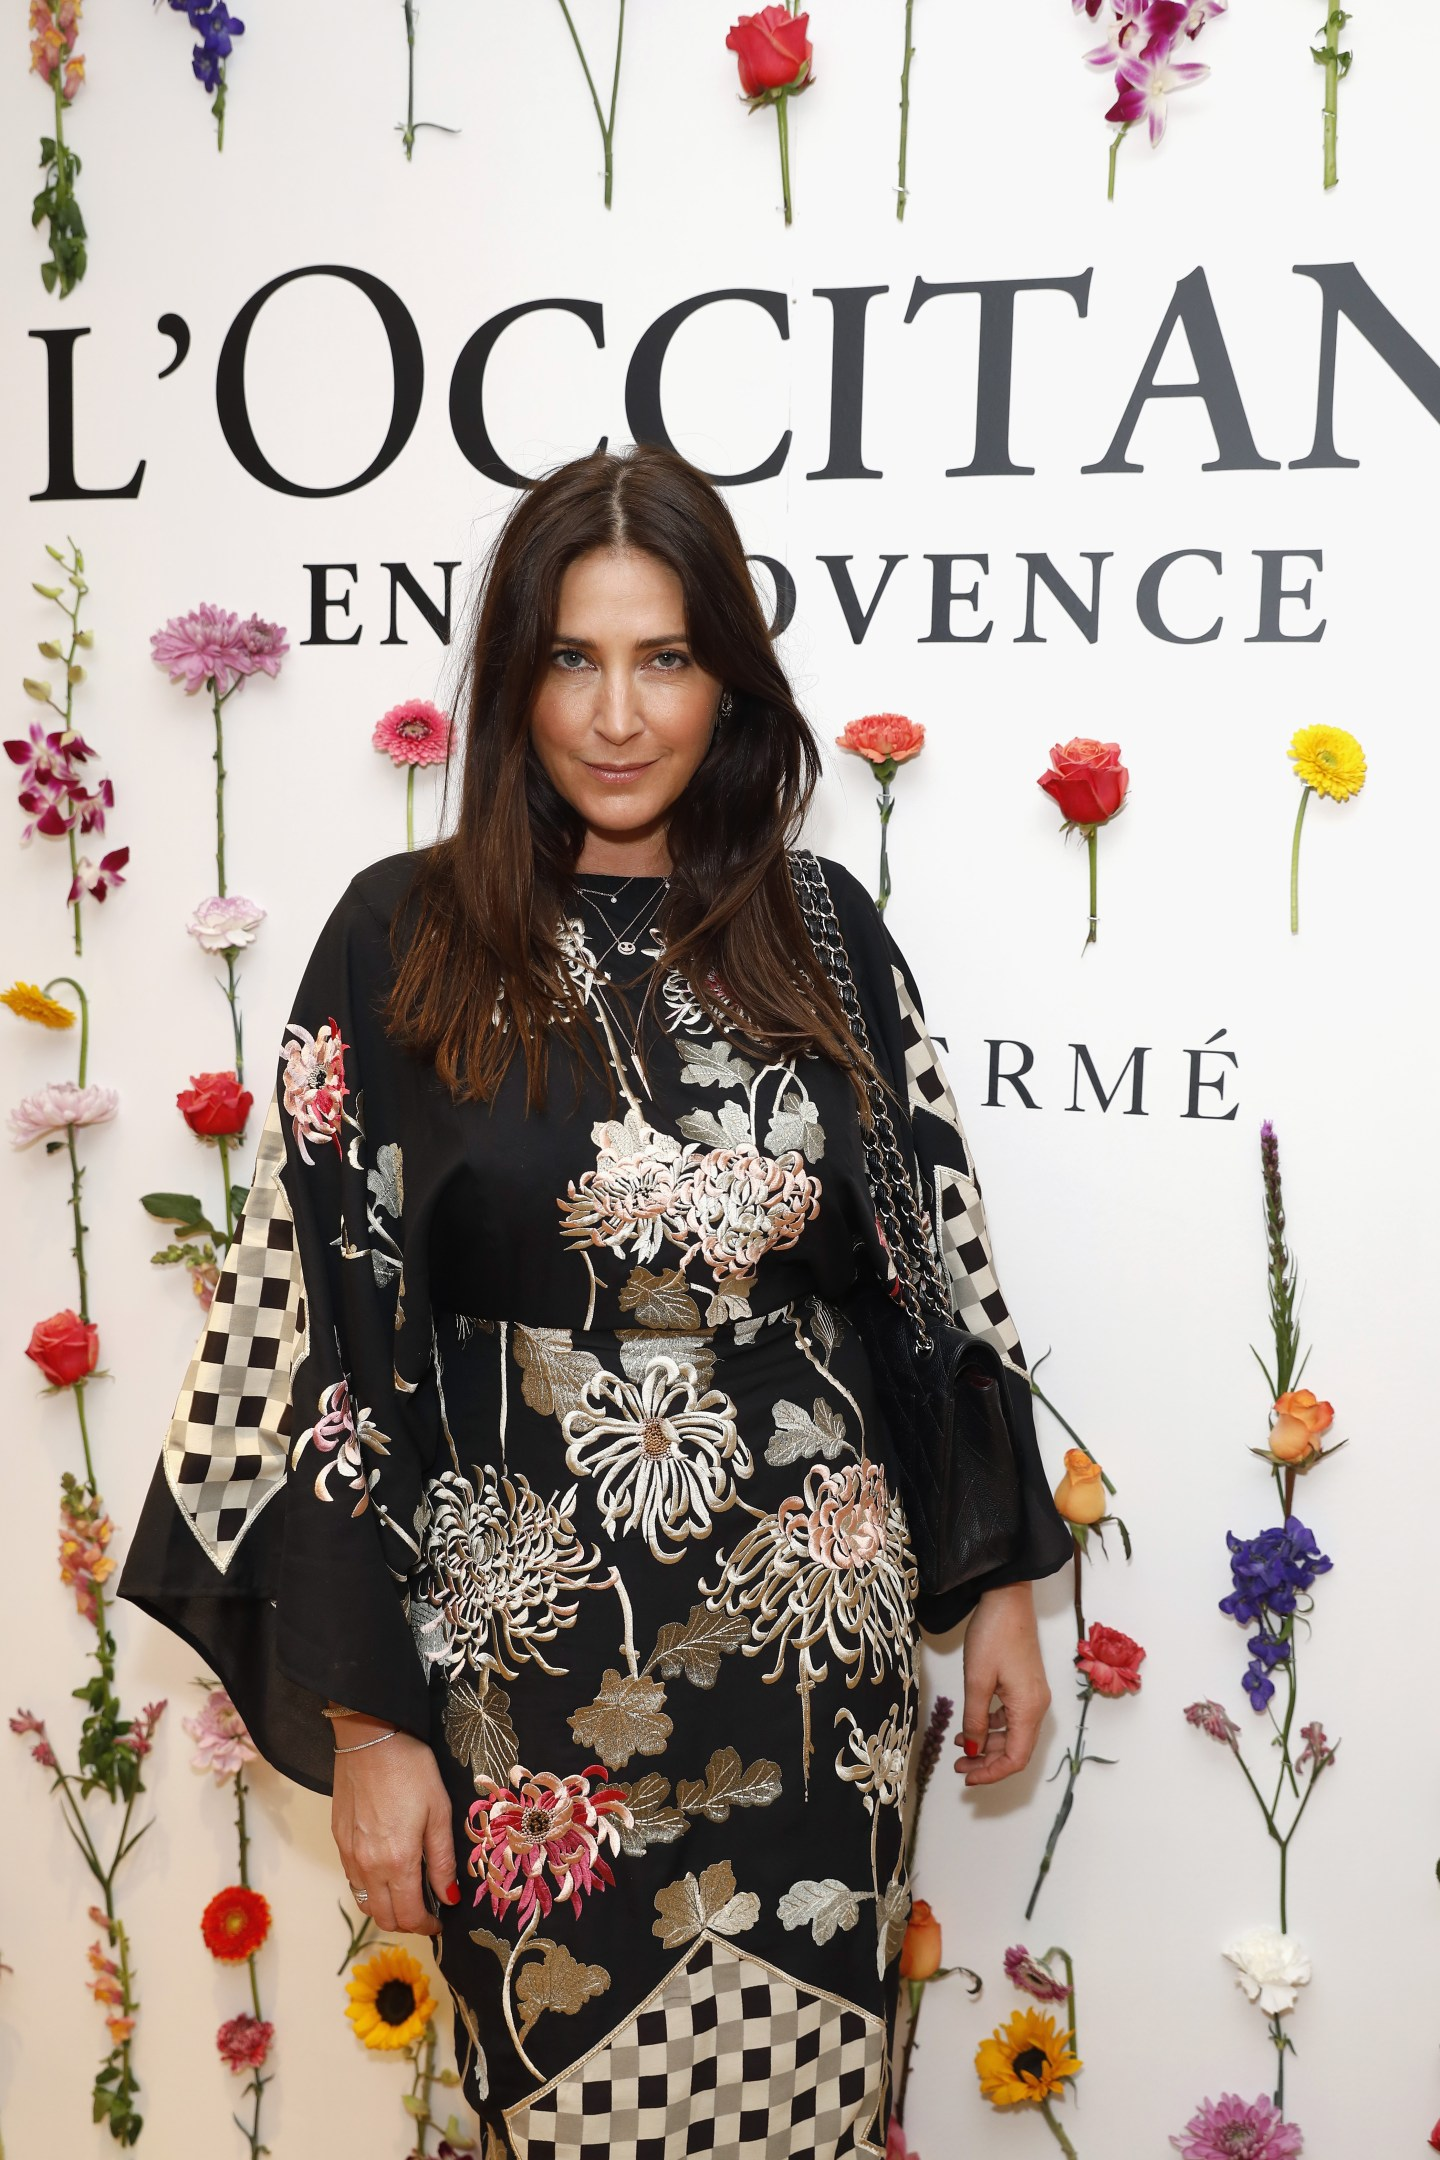 L'OCCITANE Flagship Store Launch Party